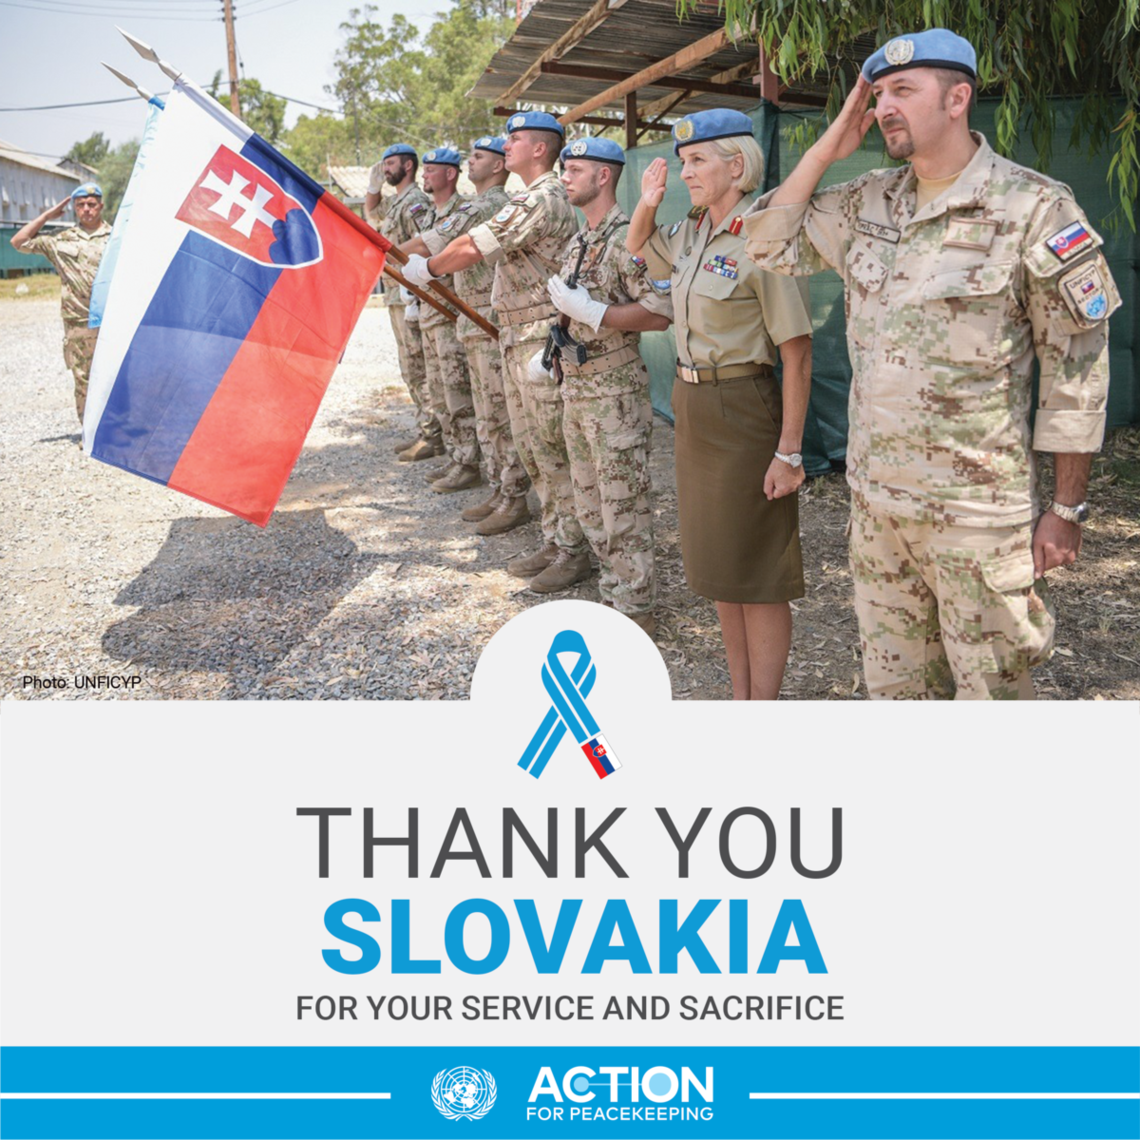 Thank you Slovakia for your service and sacrifice